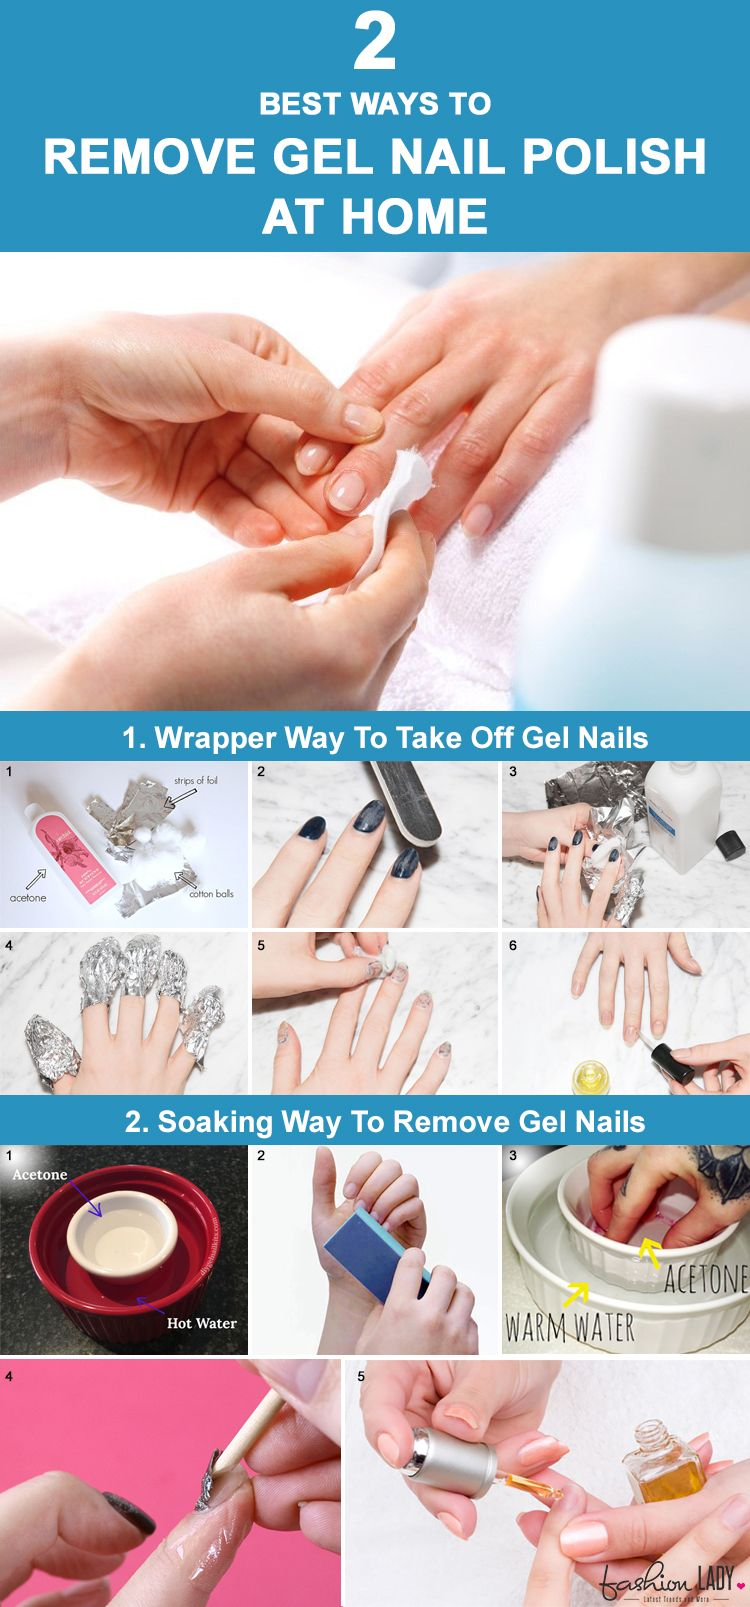 2 Best Ways To Remove Gel Nail Polish At Home Gel Nail Removal Take Off Gel Nails Gel Nail Varnish